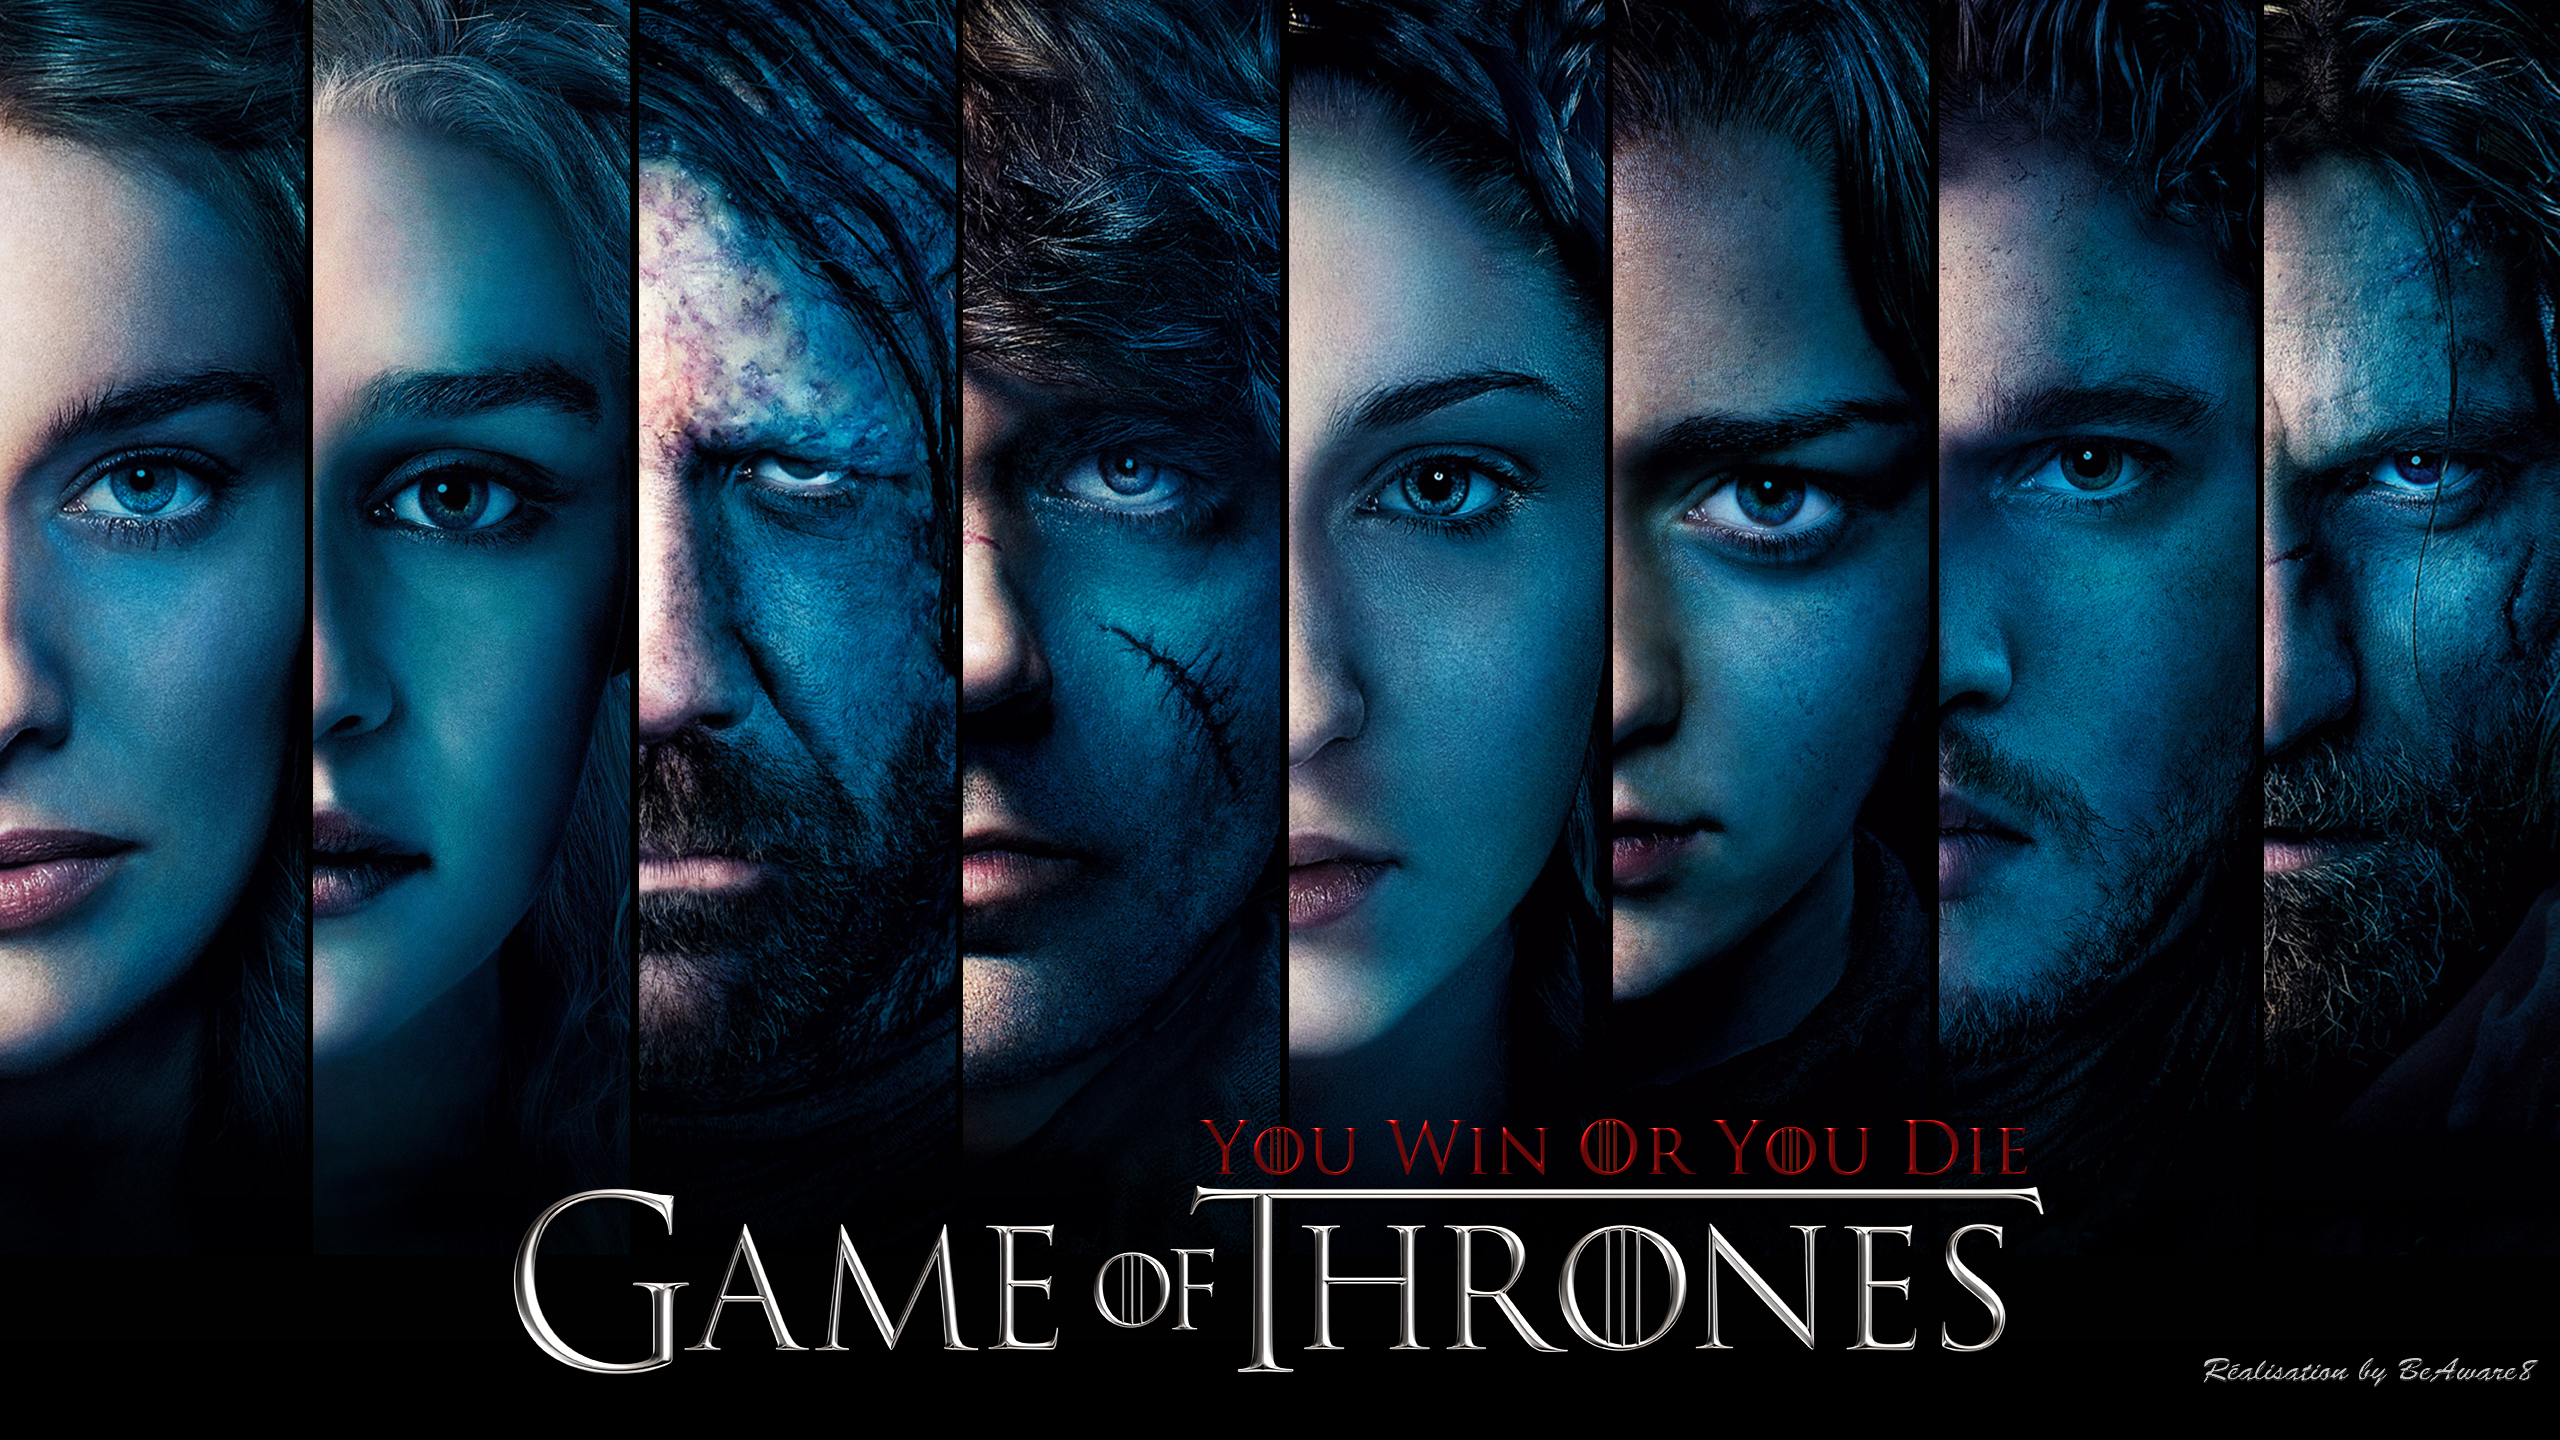 Game of Thrones (Season 2 Complete)